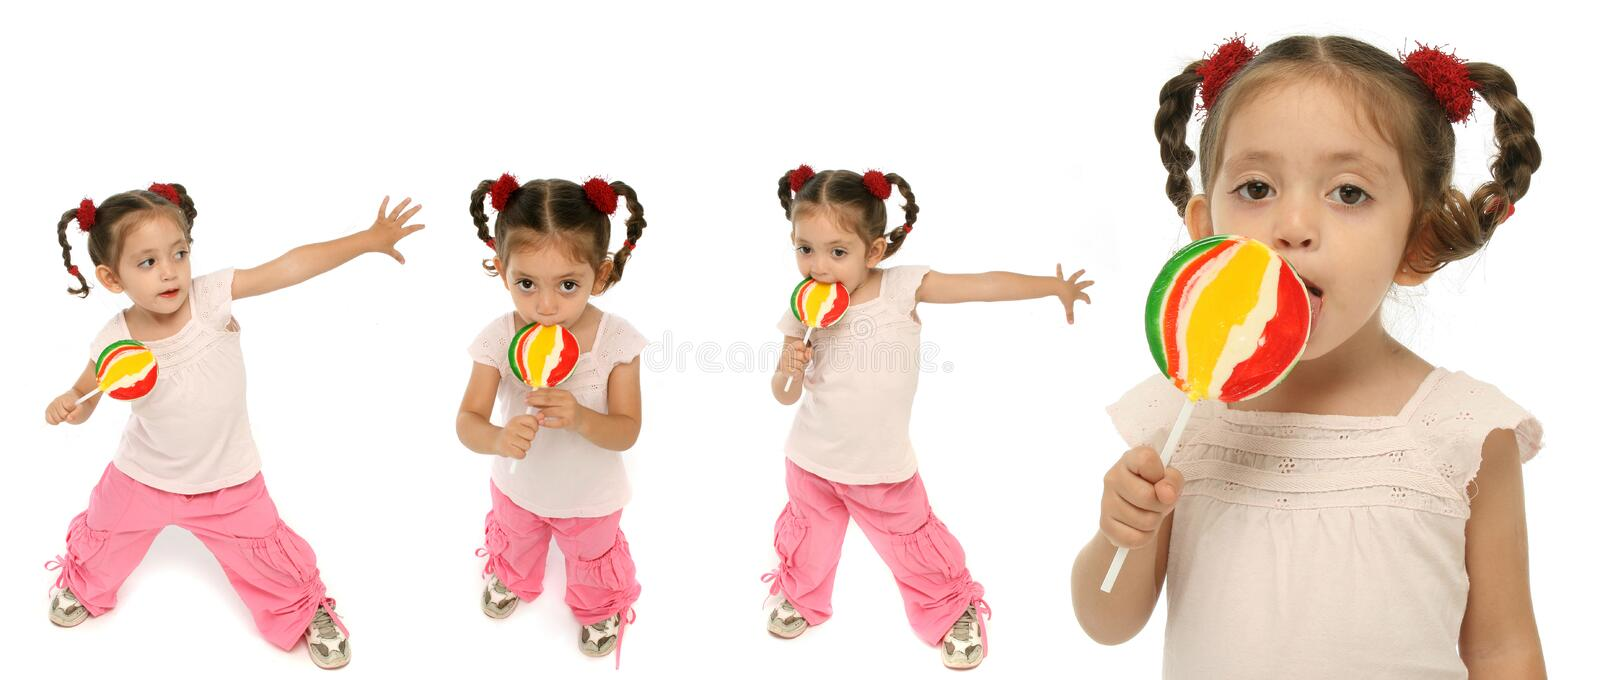 Download Toddler Holding A Lollipop Wit Stock Image - Image: 2750441